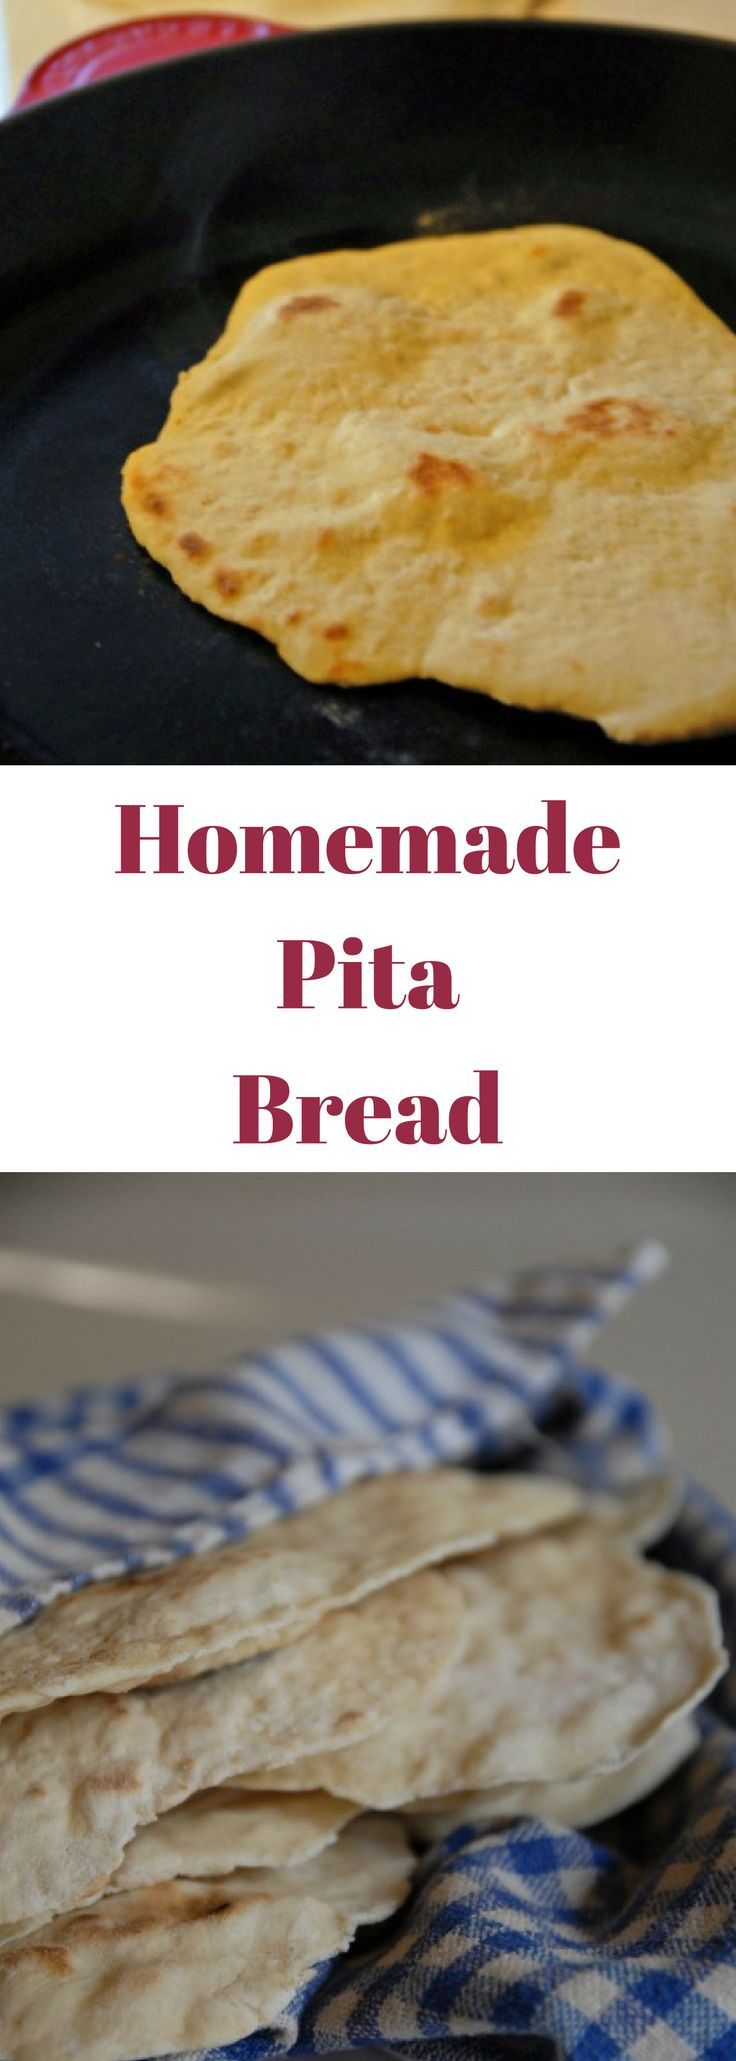 If you think you are going to love your pita bread as much as I did, go ahead and make a double batch.  Both of my batches were gone in a matter of a few days and I wish I had made more!